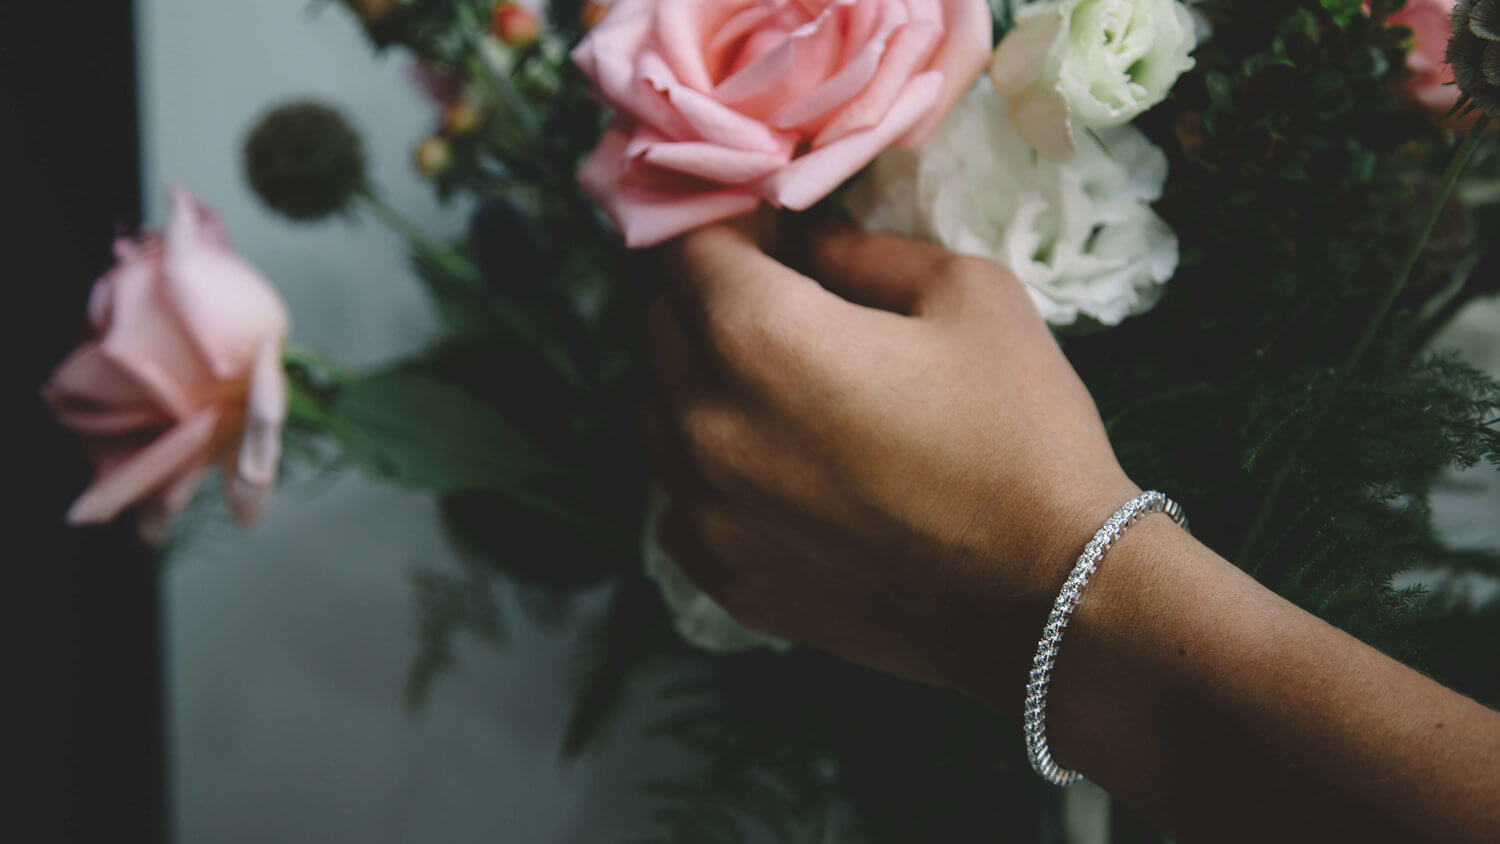 bogo-jewelry-photography-bracelet.jpg